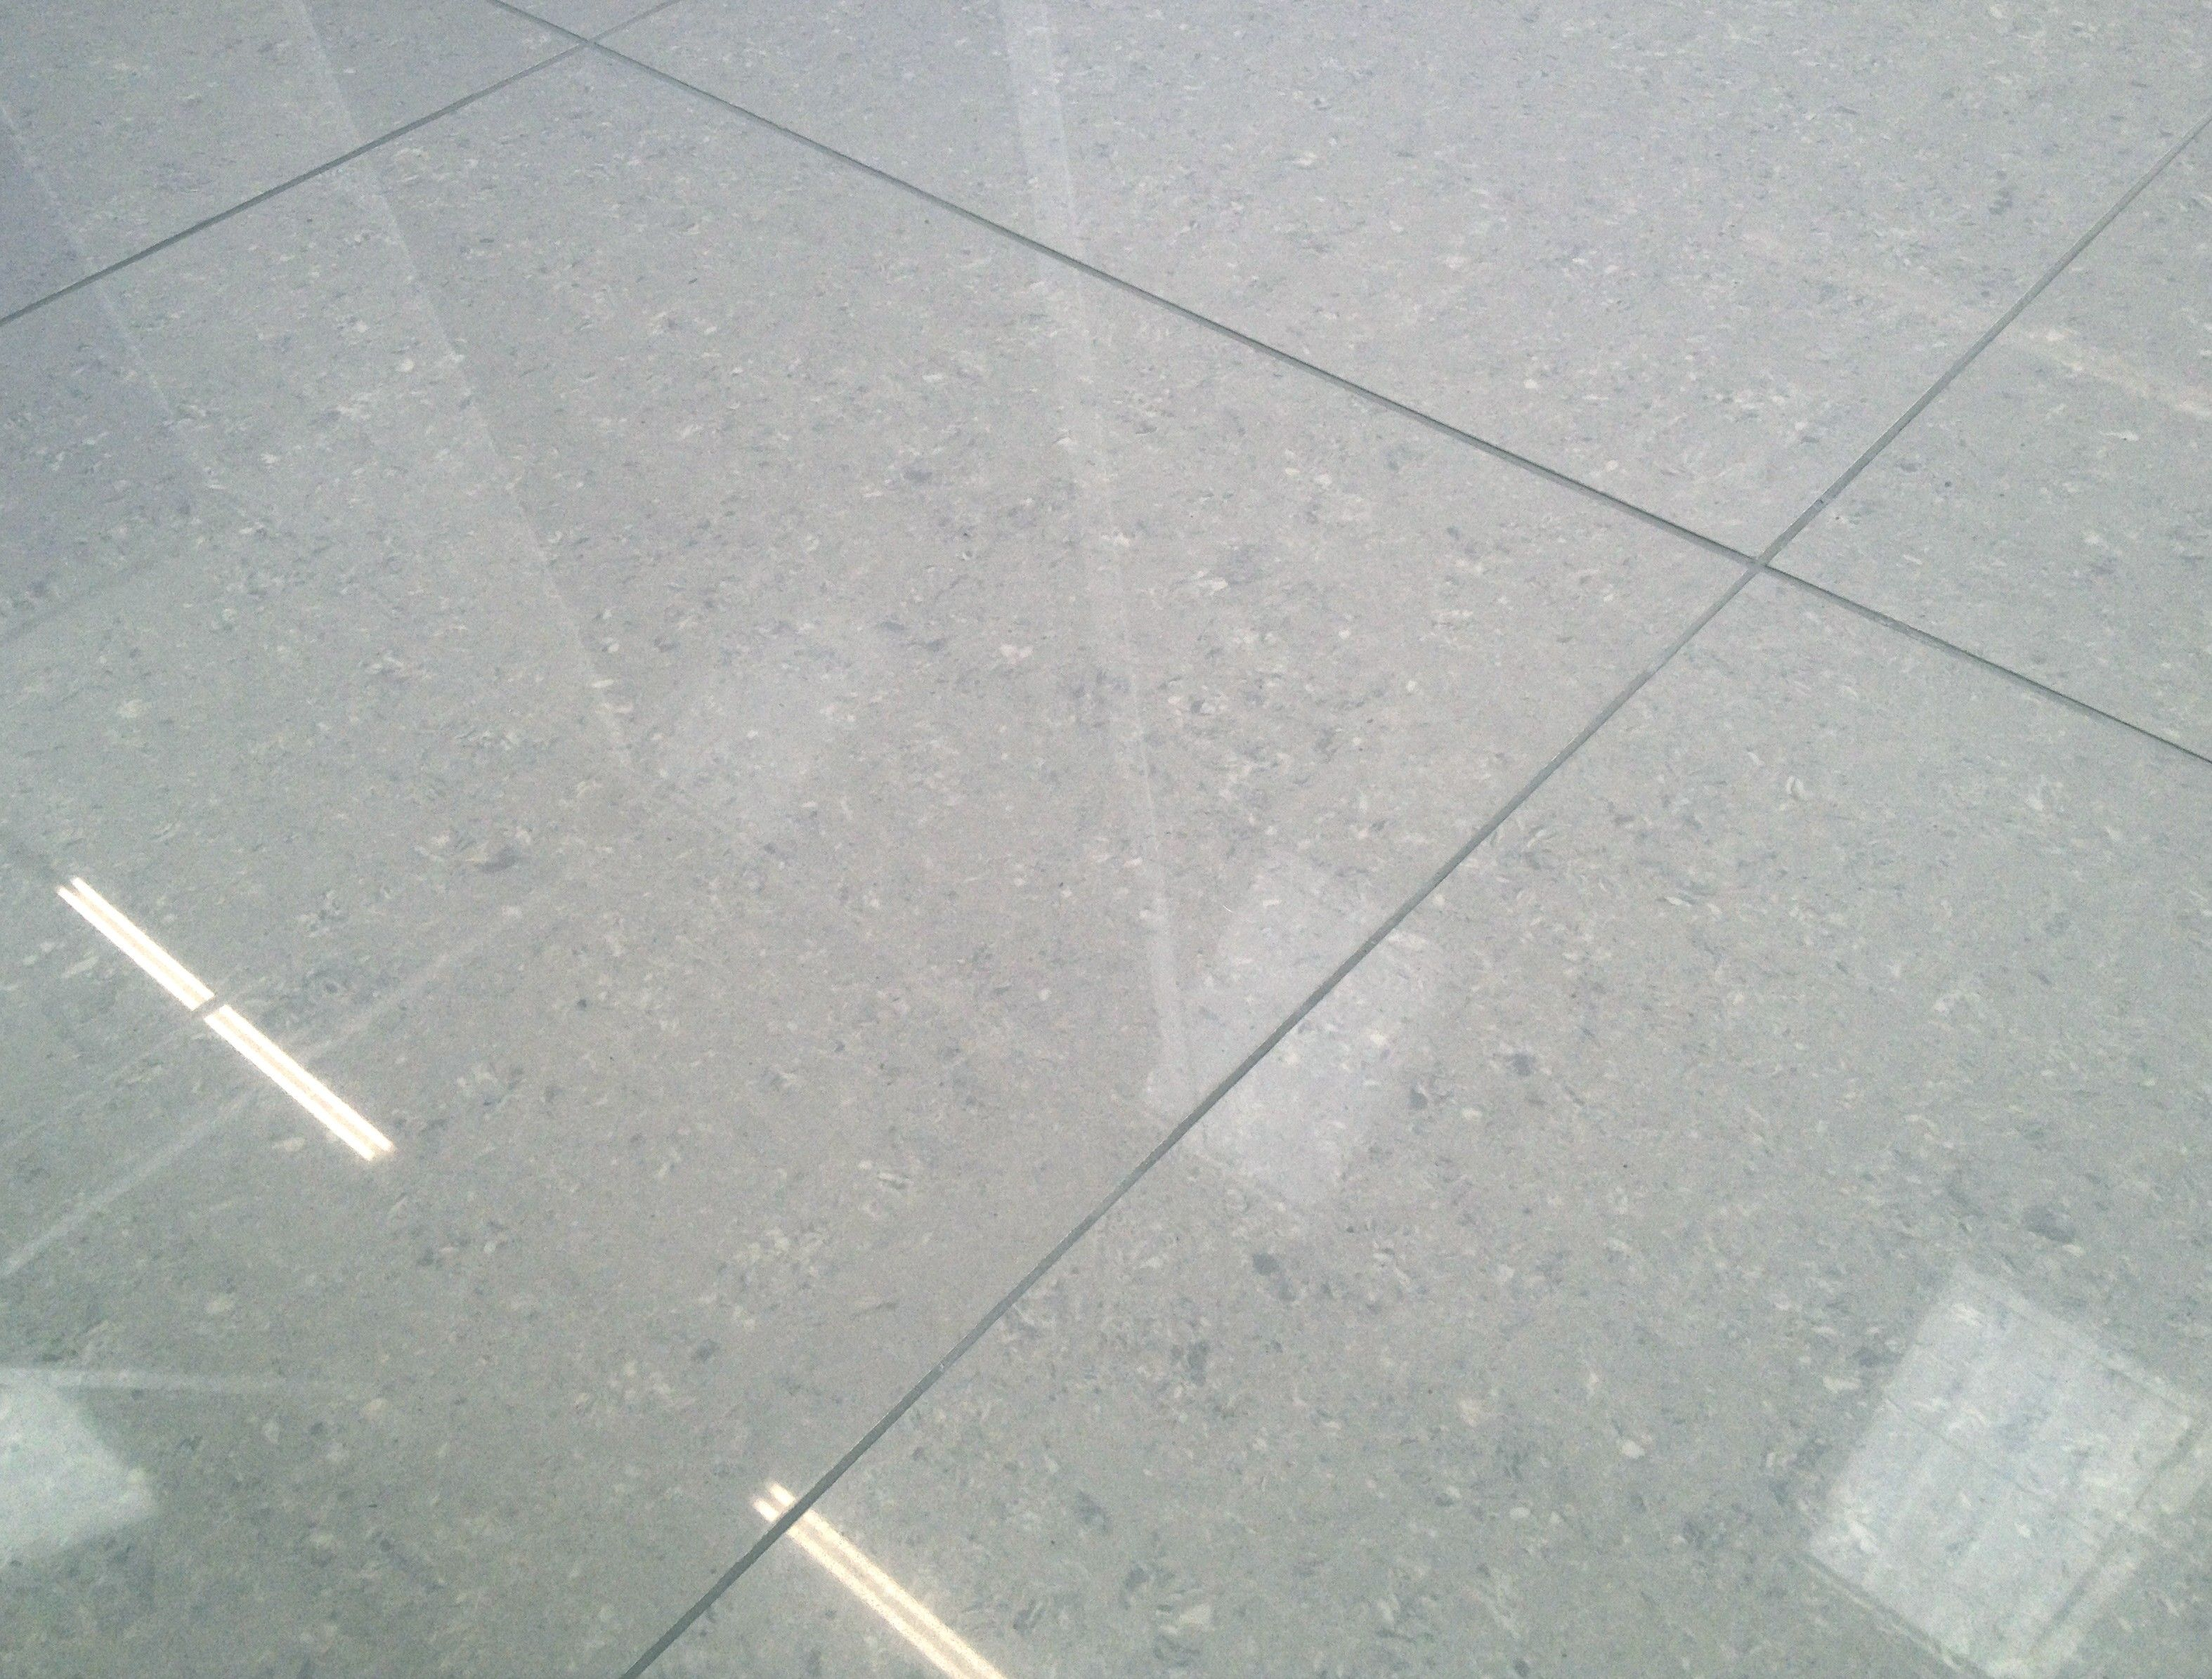 Floor Tiles Uk Kitchen The Grey Porcelain Floor Tiles Uk Up There Is Used Allow The